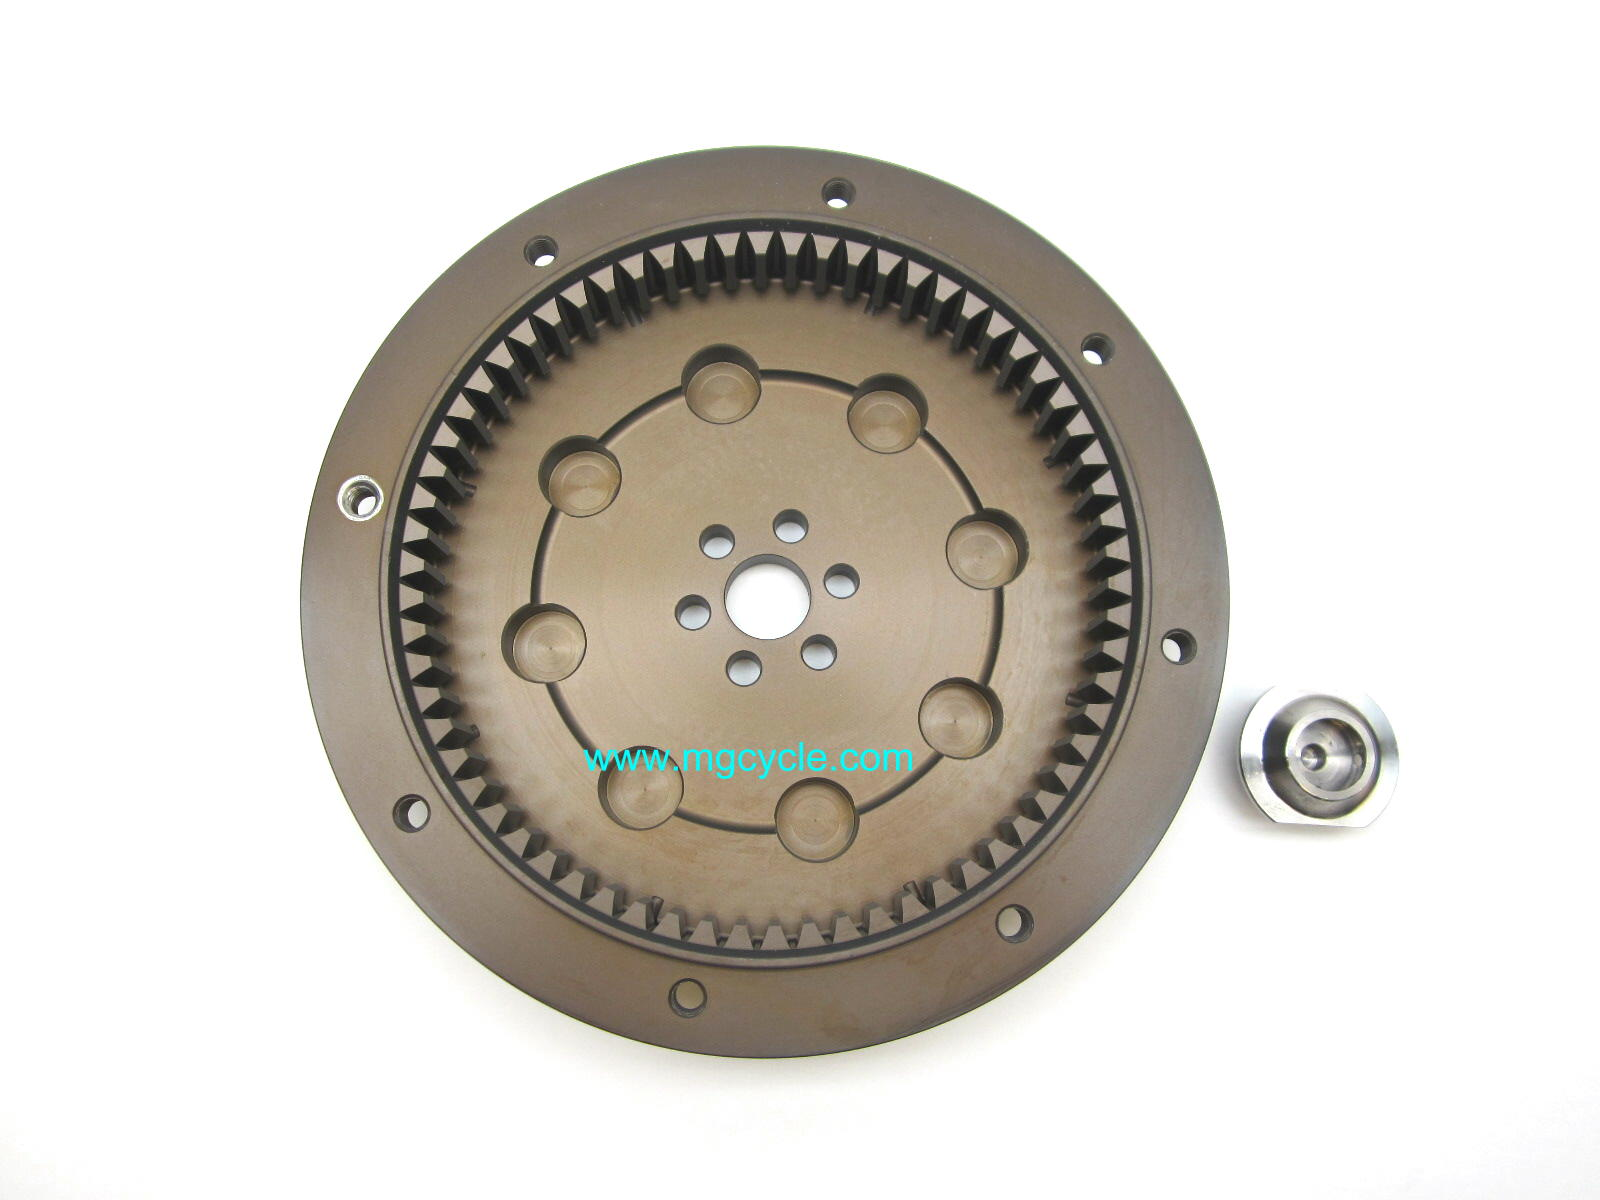 Ergal aluminum flywheel, special order only